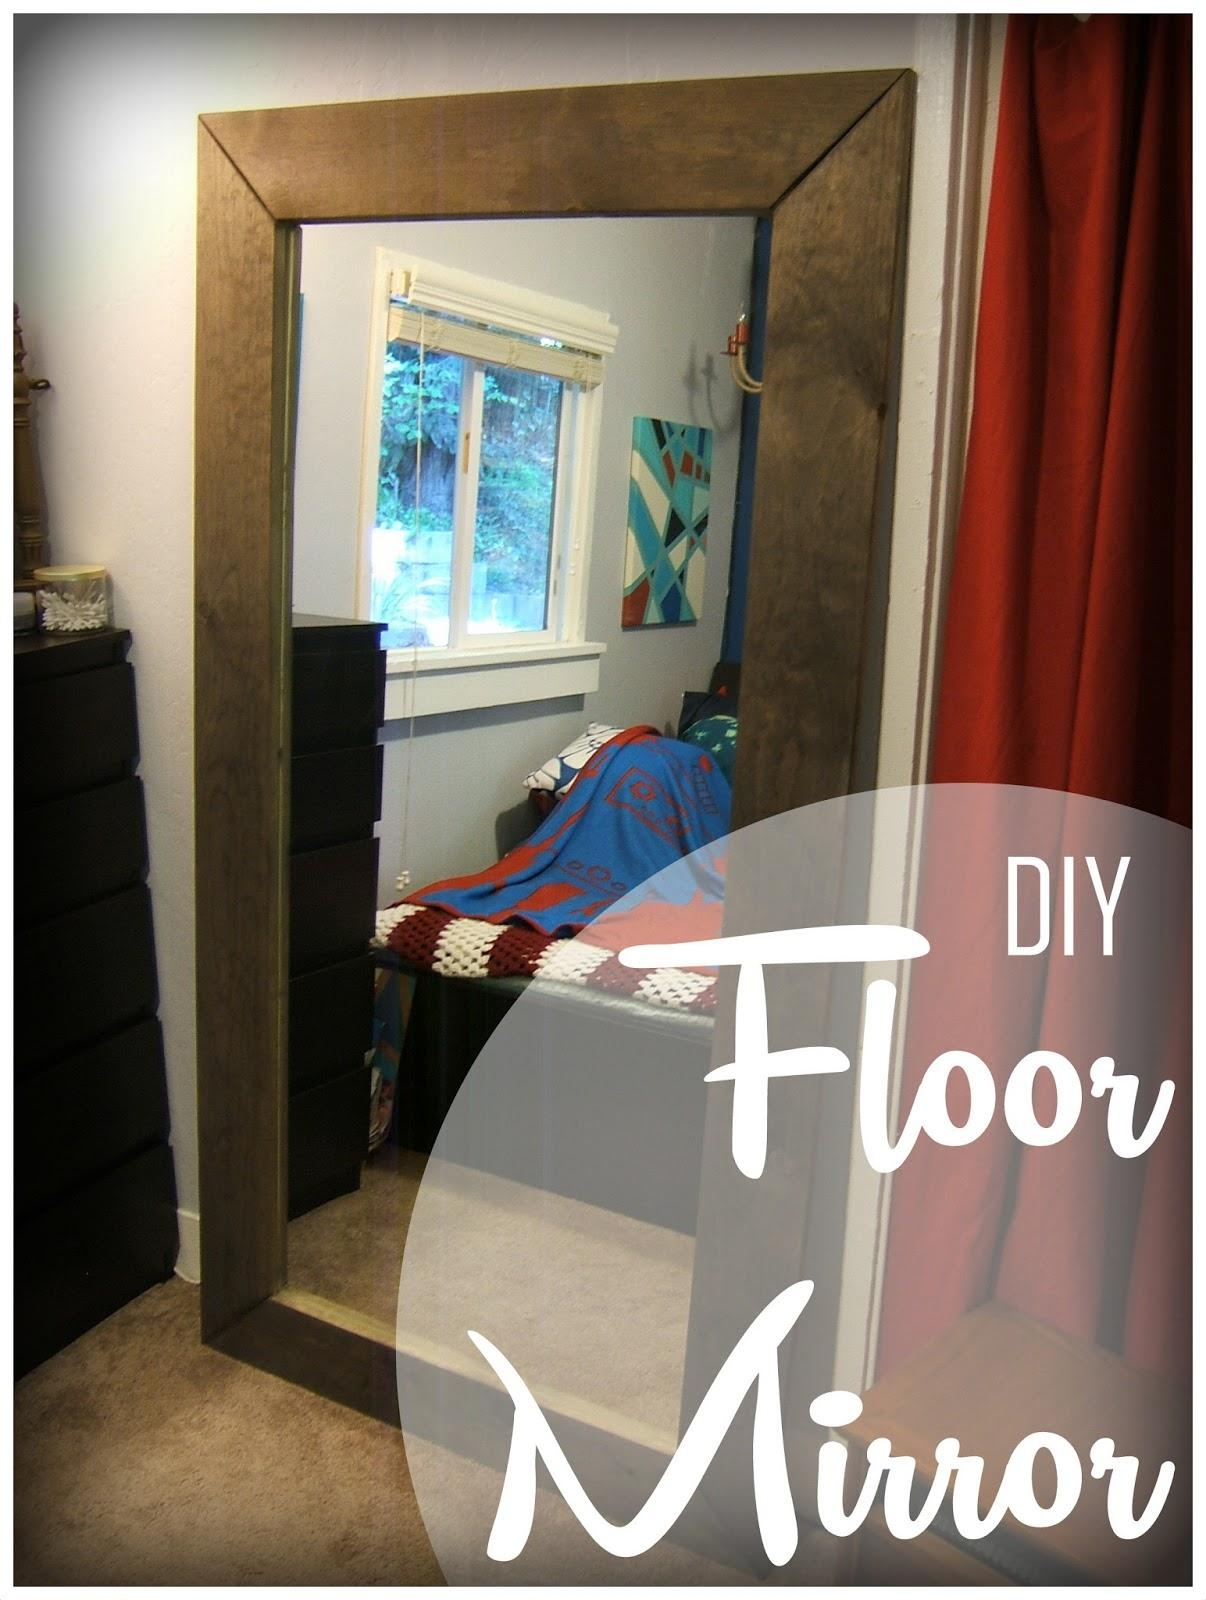 Nine Red: Diy Floor Mirror Intended For Framed Floor Mirrors (View 14 of 20)